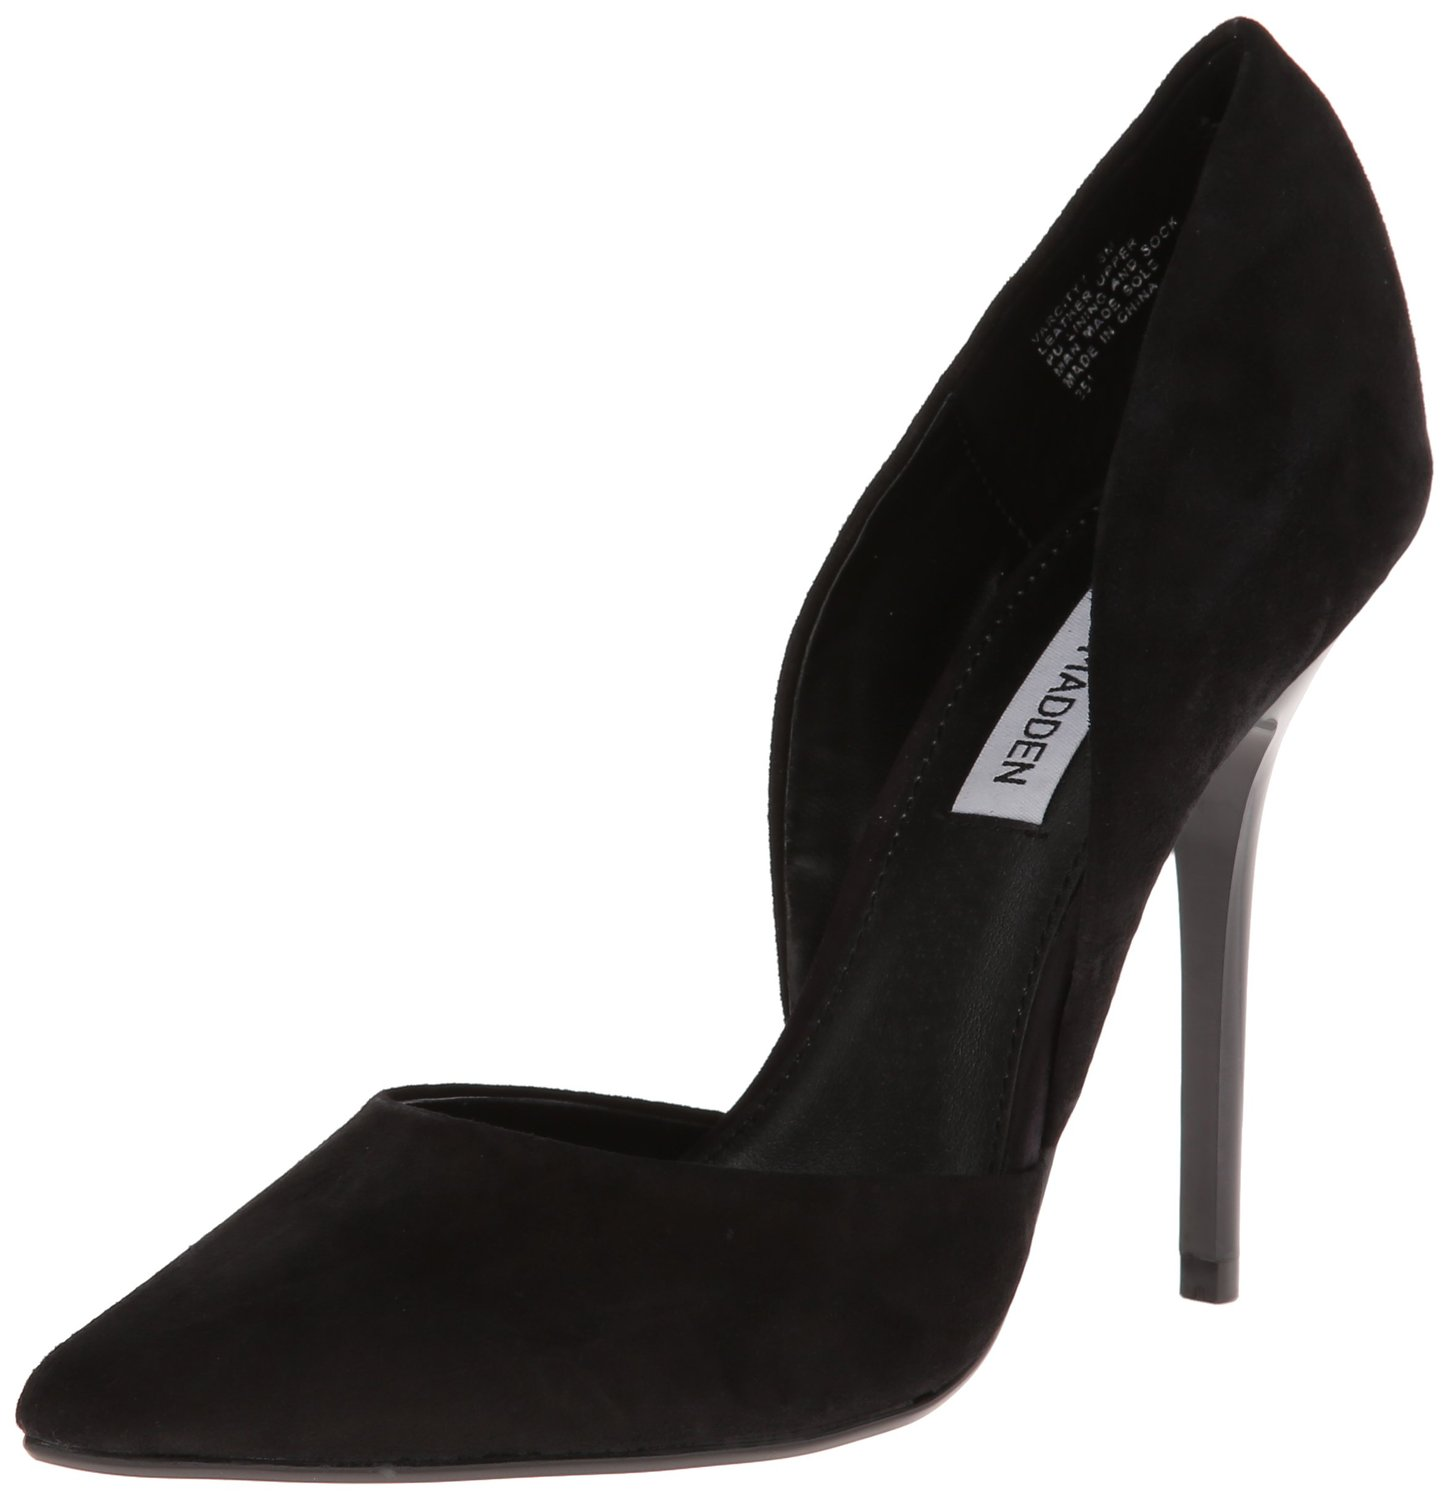 548c2ee5d6f Steve Madden Varcityy Dress Pump